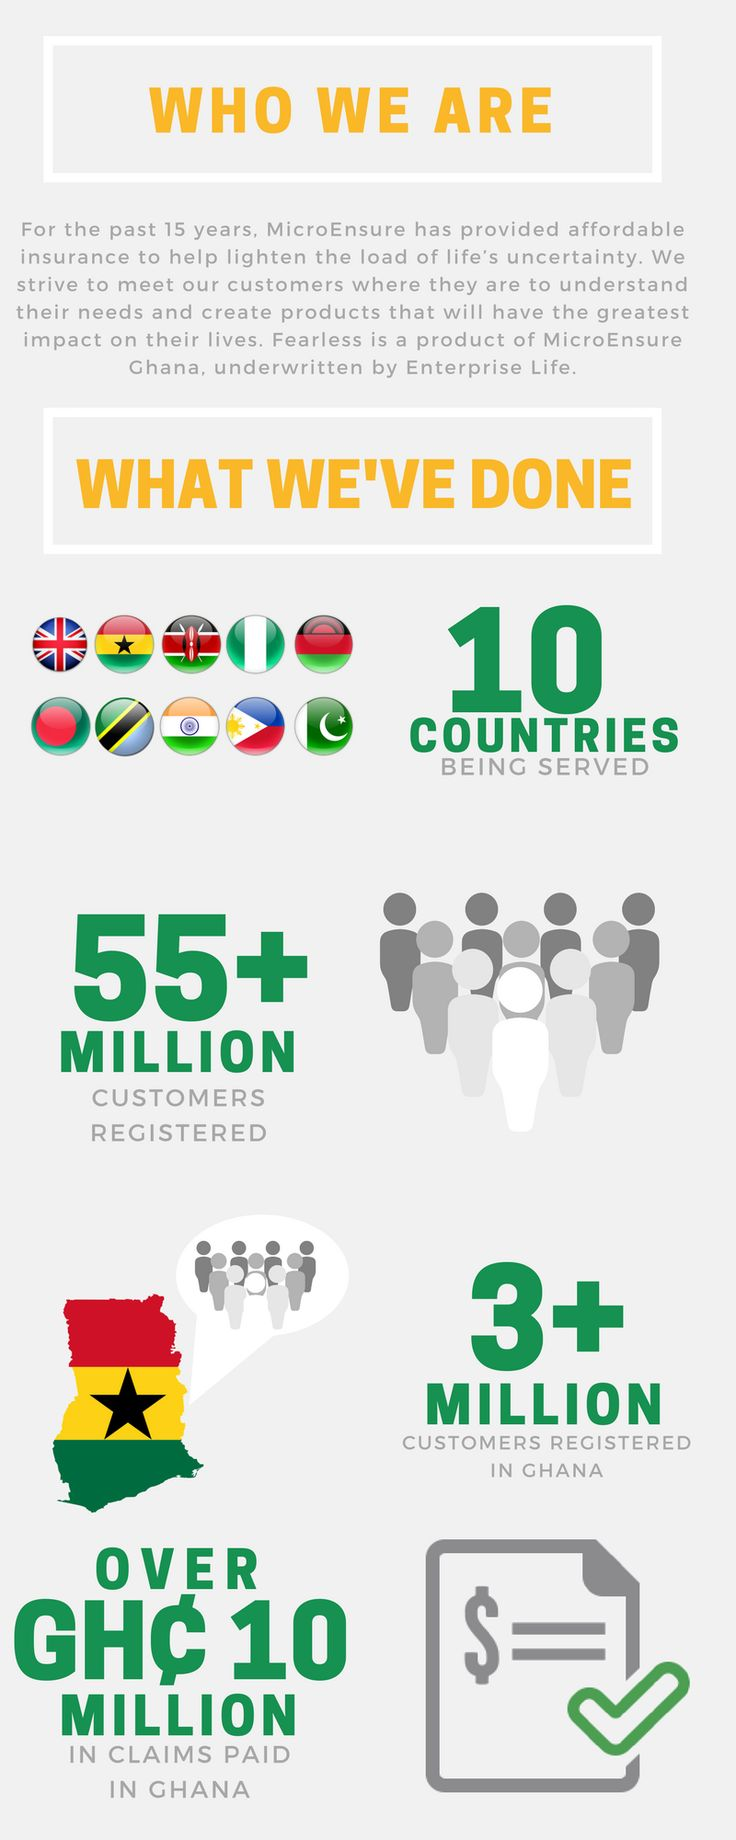 Infographic created for Fearless Ghana, an insurance company owned by Microensure.